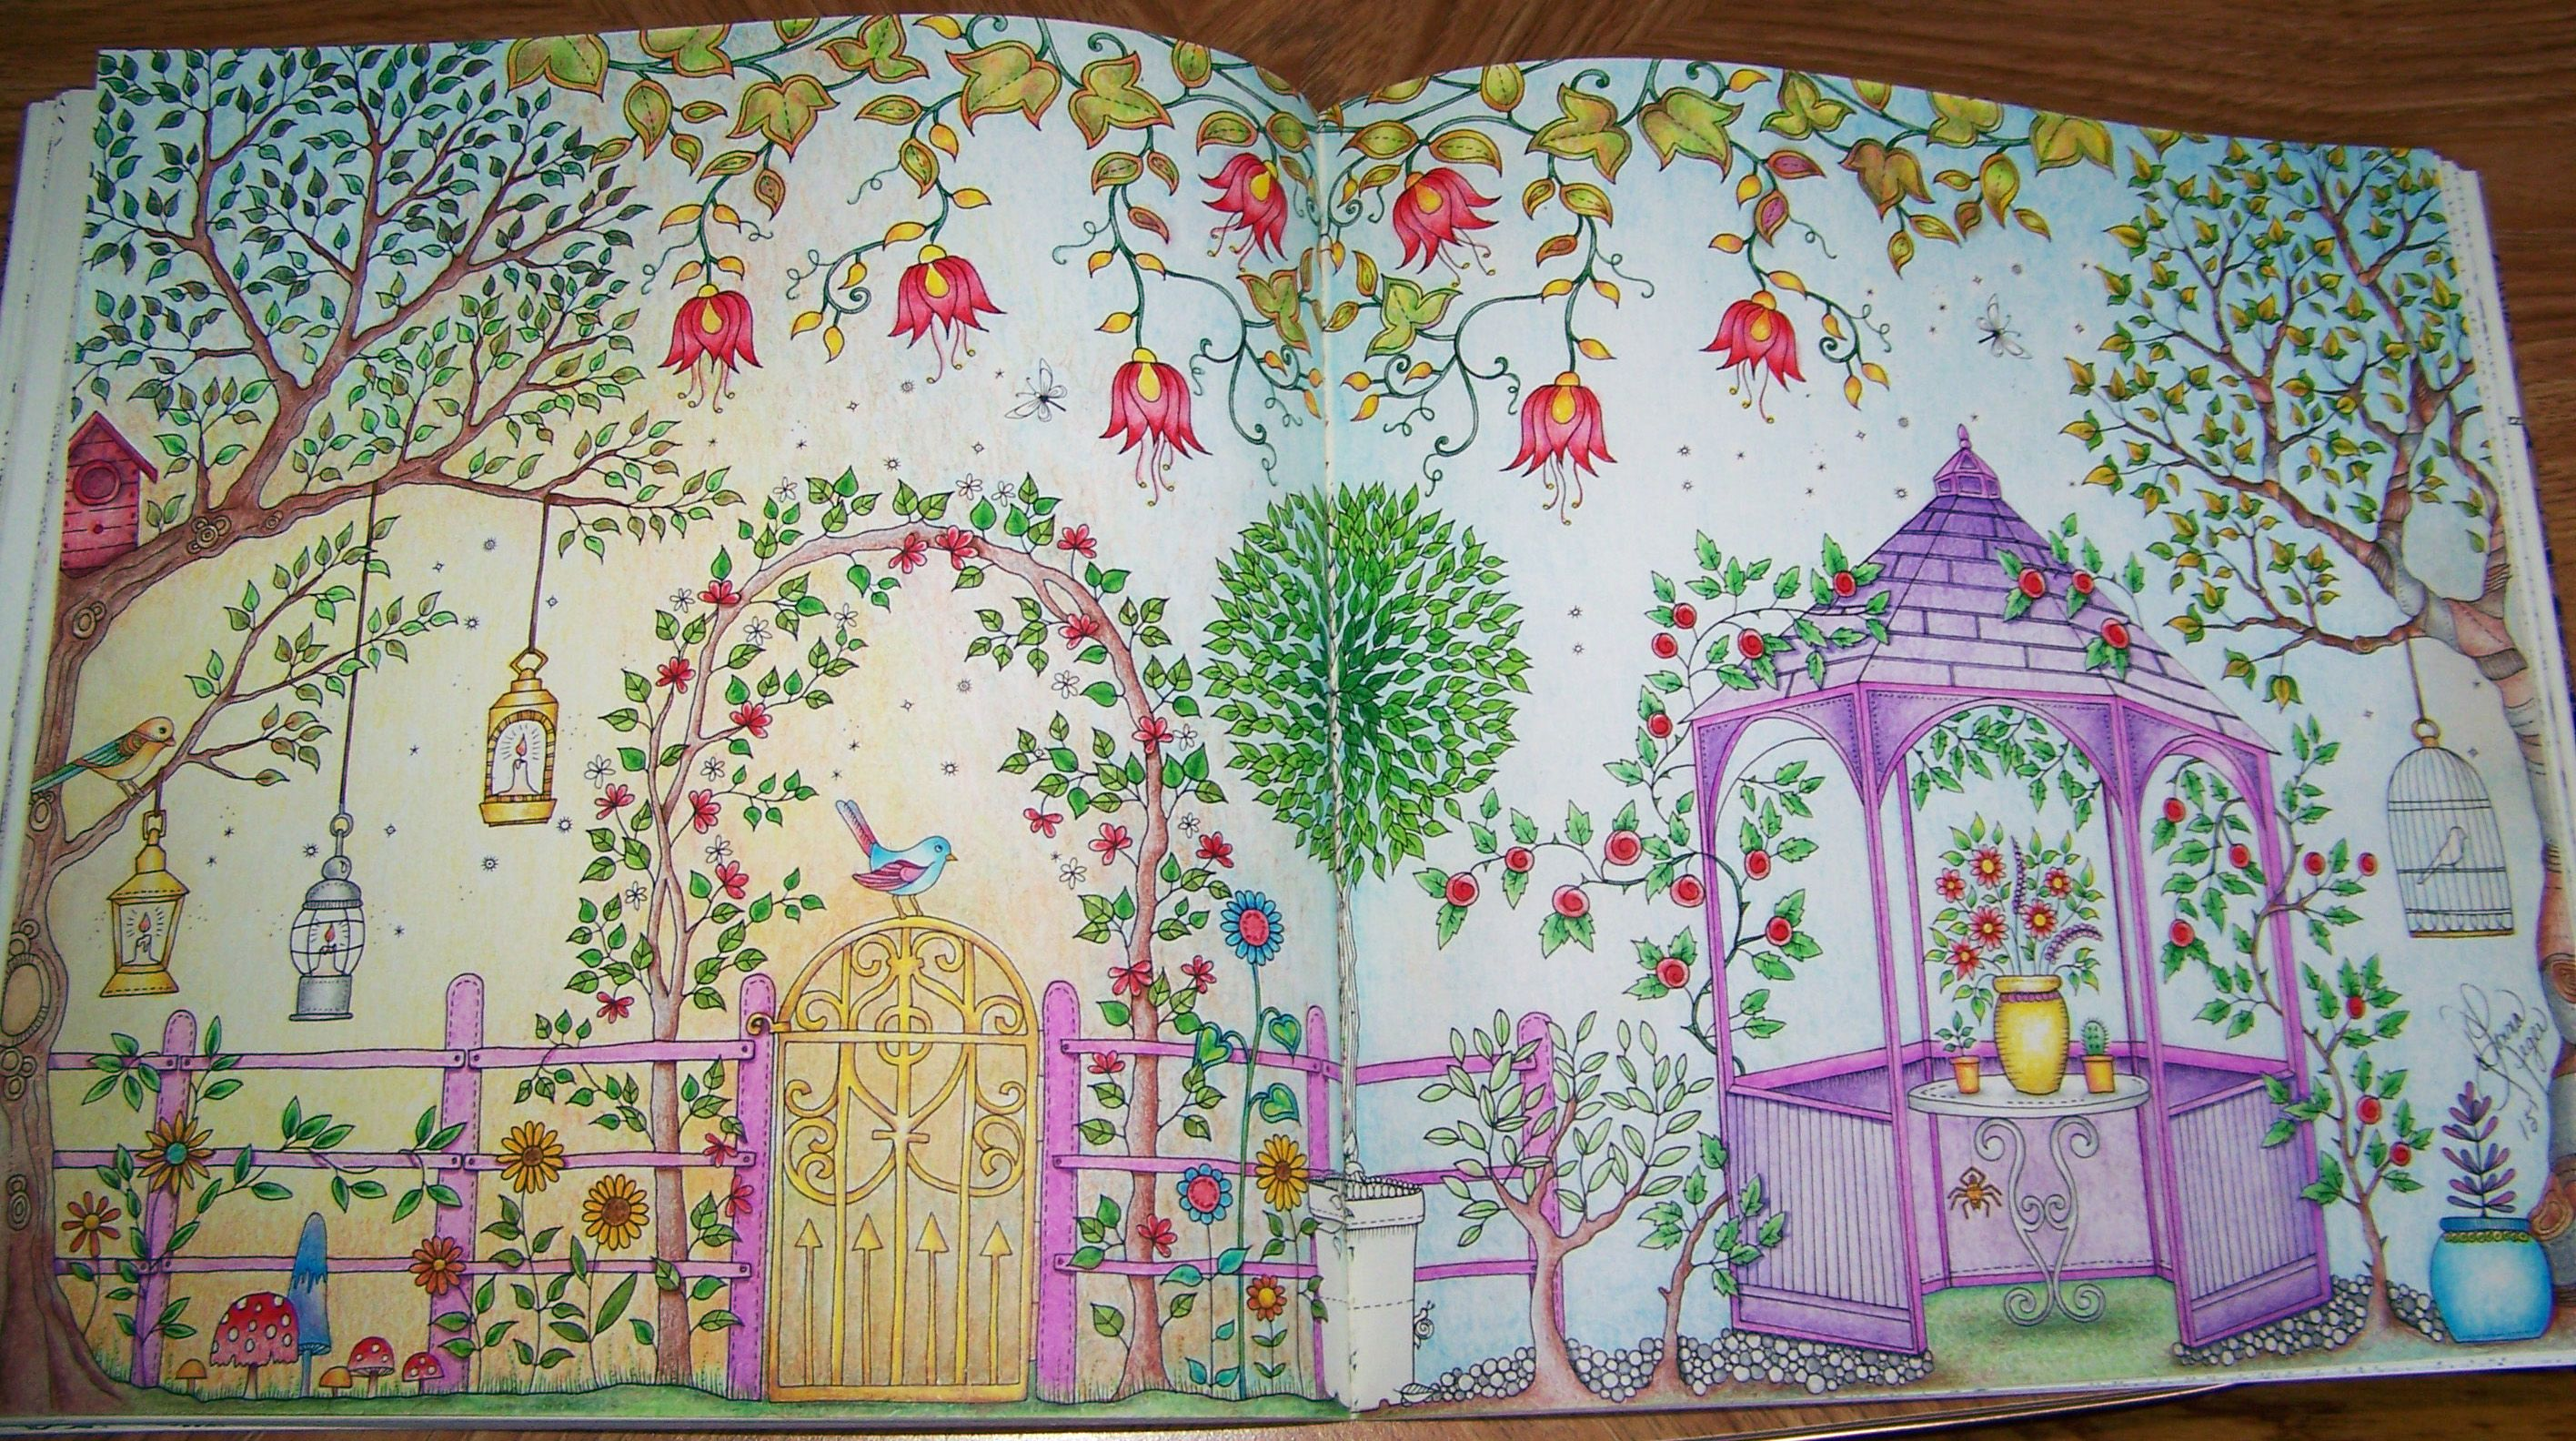 Both Page View From The Secret Garden Book By Johanna